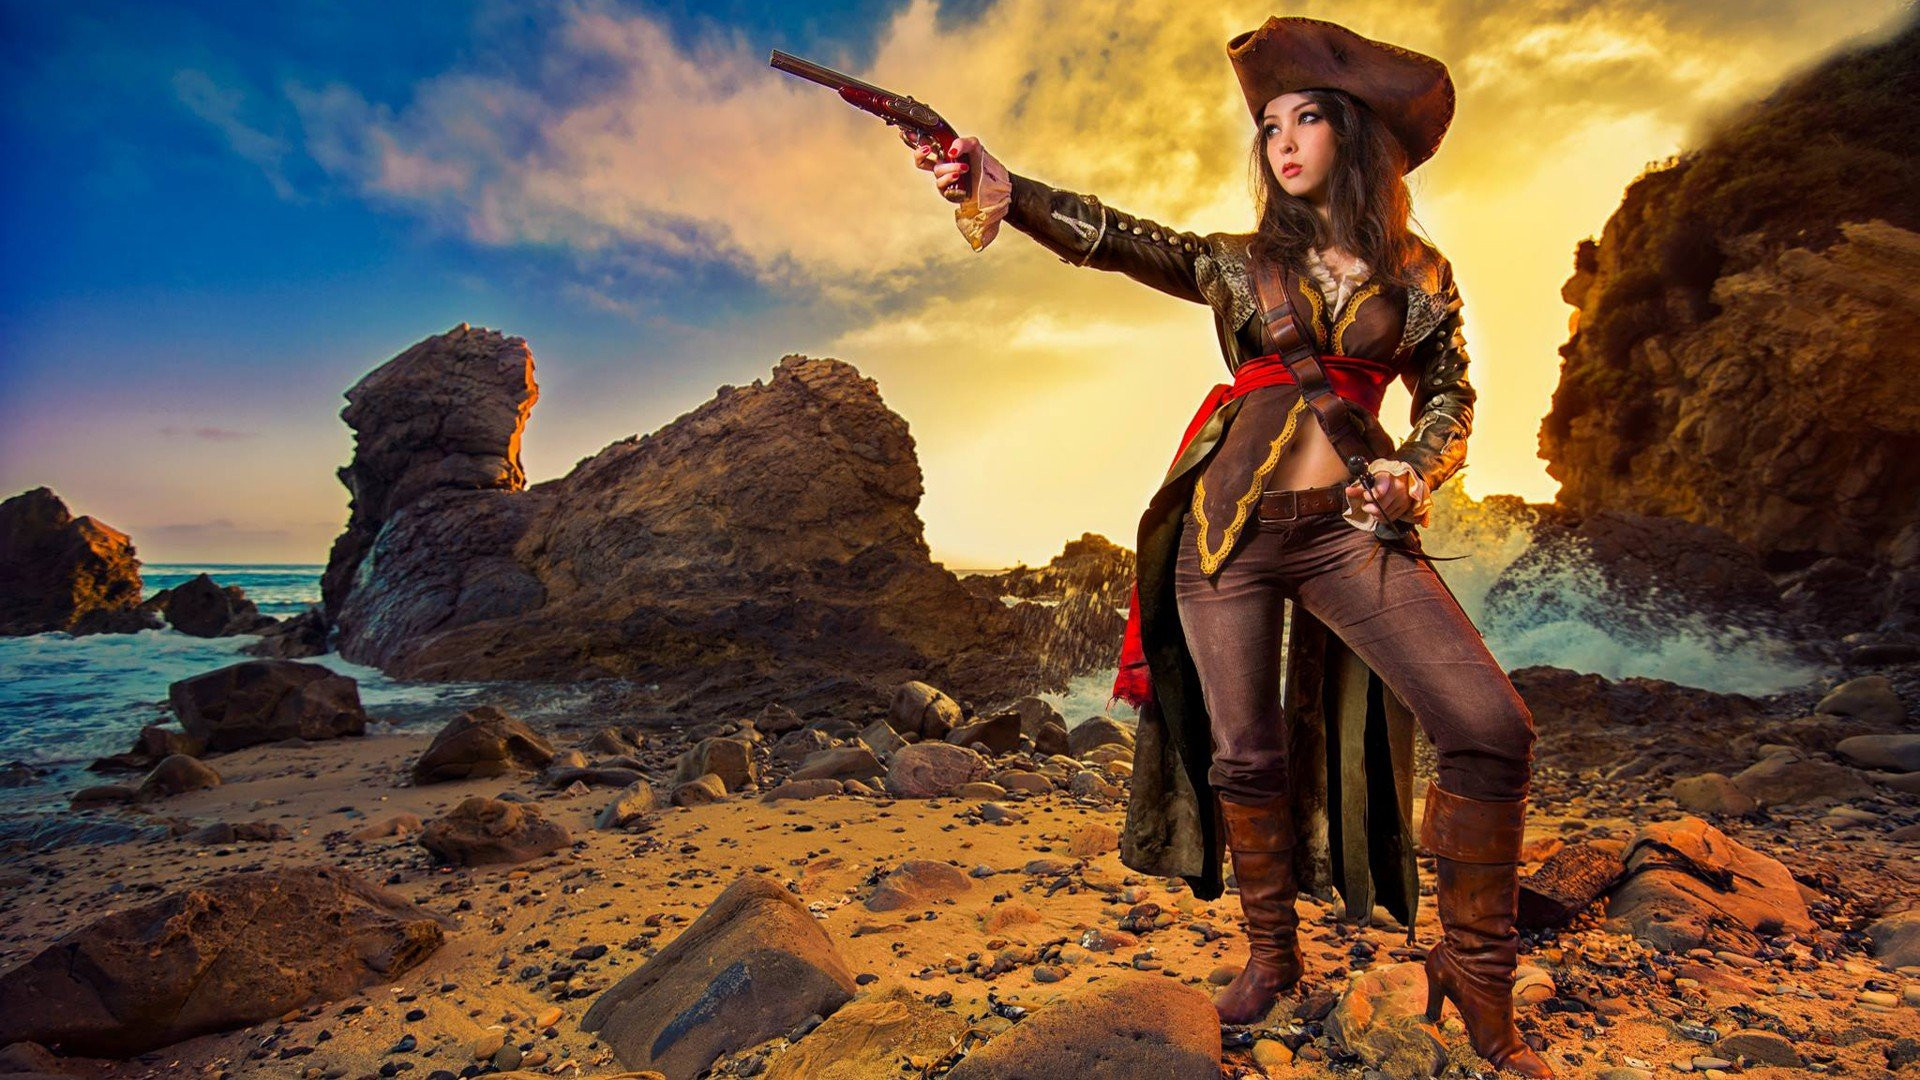 Monika Lee Assassins Creed Cosplay Hd Wallpapers Desktop And